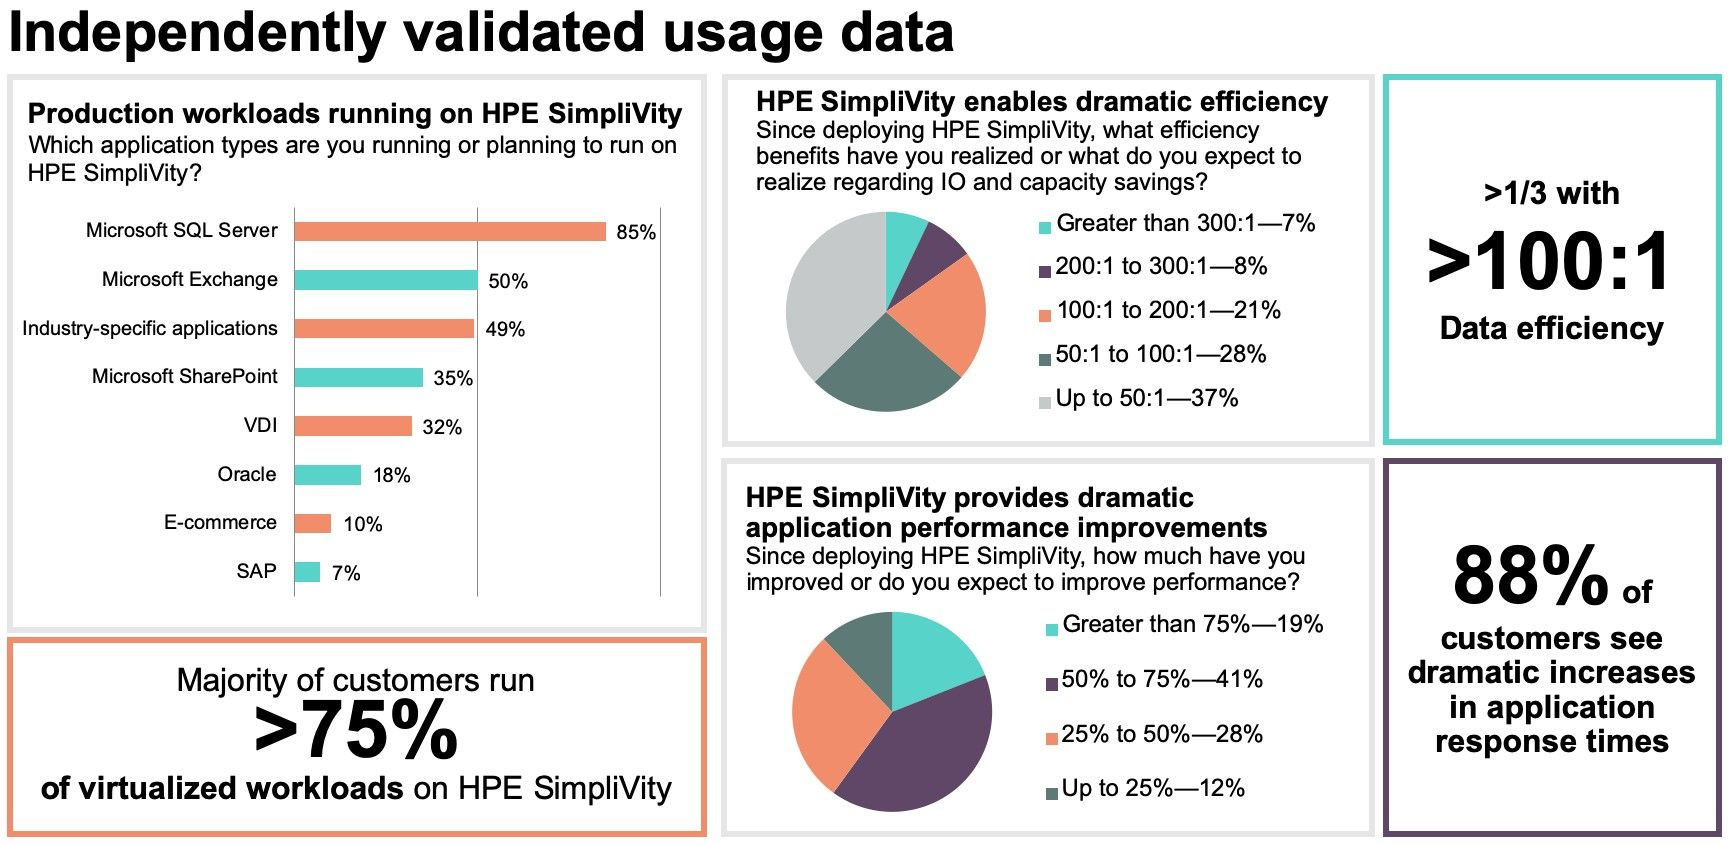 Sources: TechValidate customer data, and IDC efficiency whitepaper, 2018